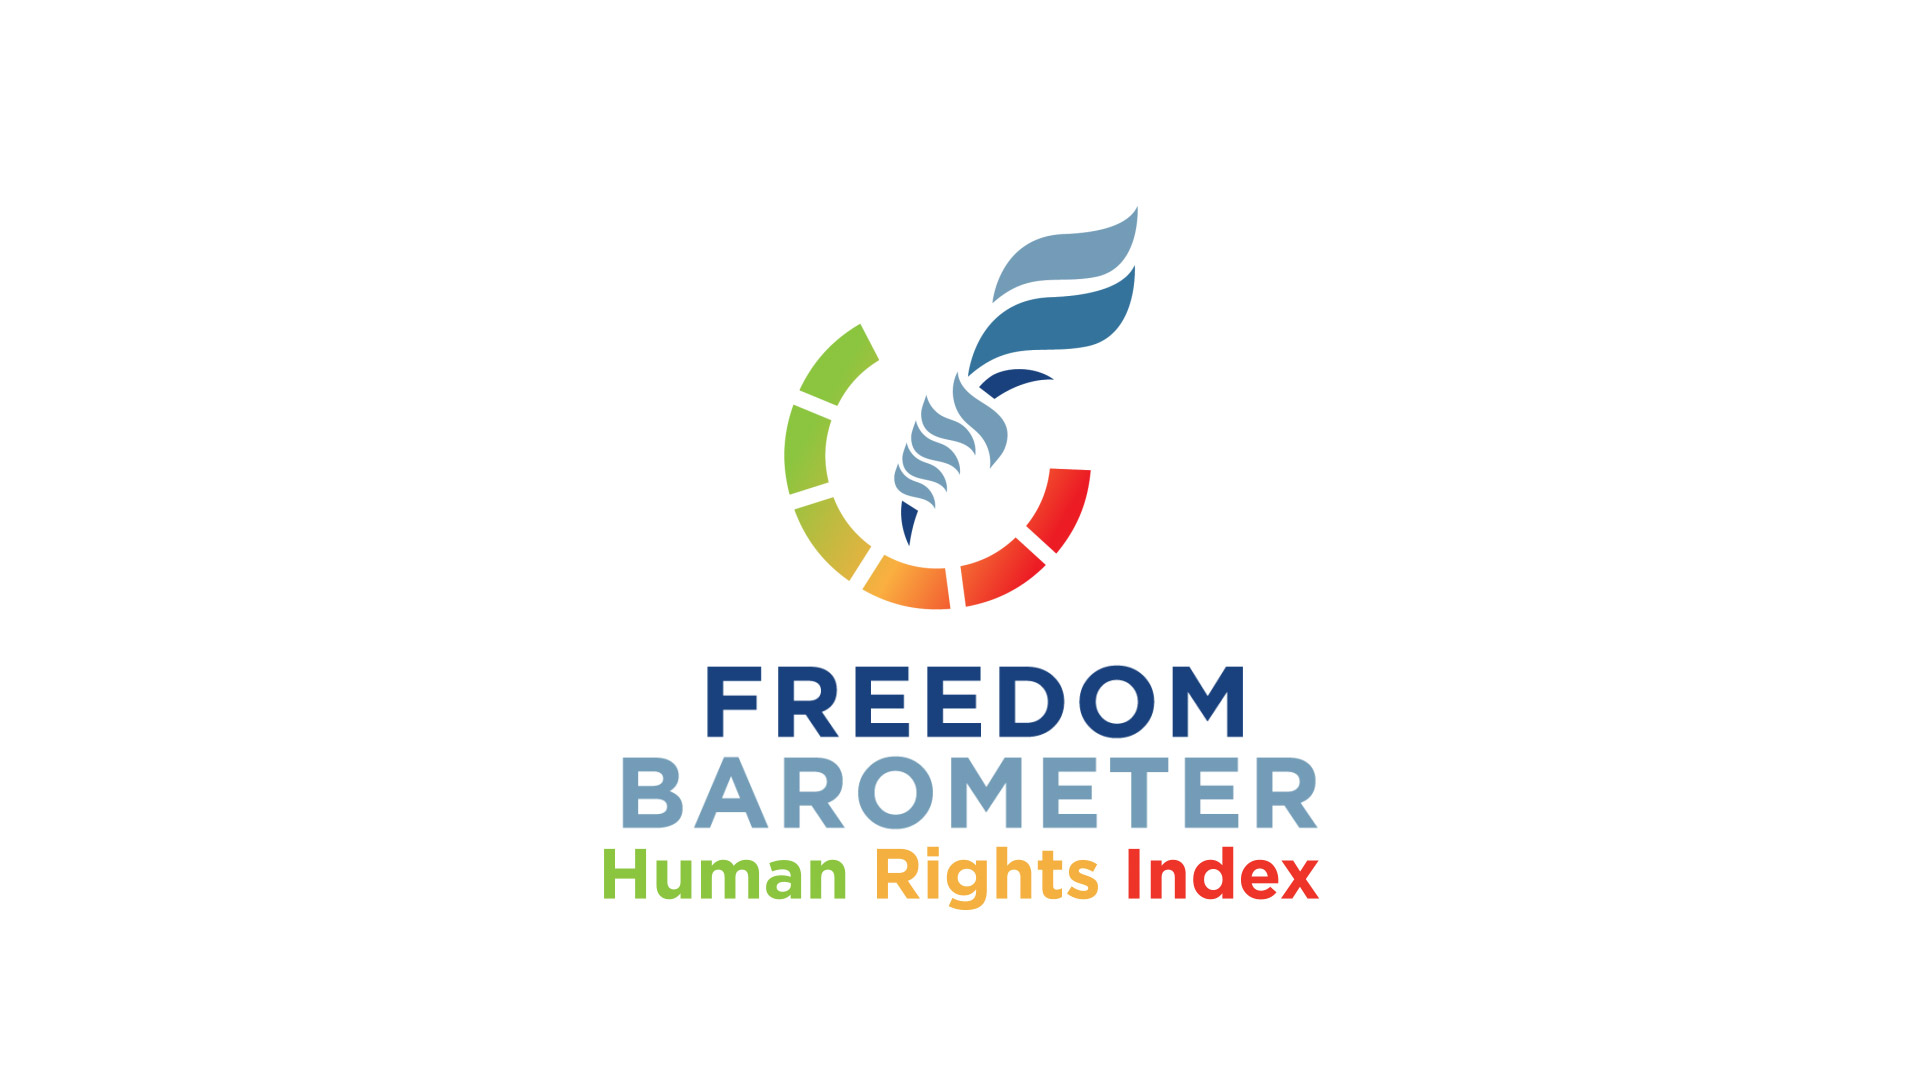 Release of the Human Rights Index